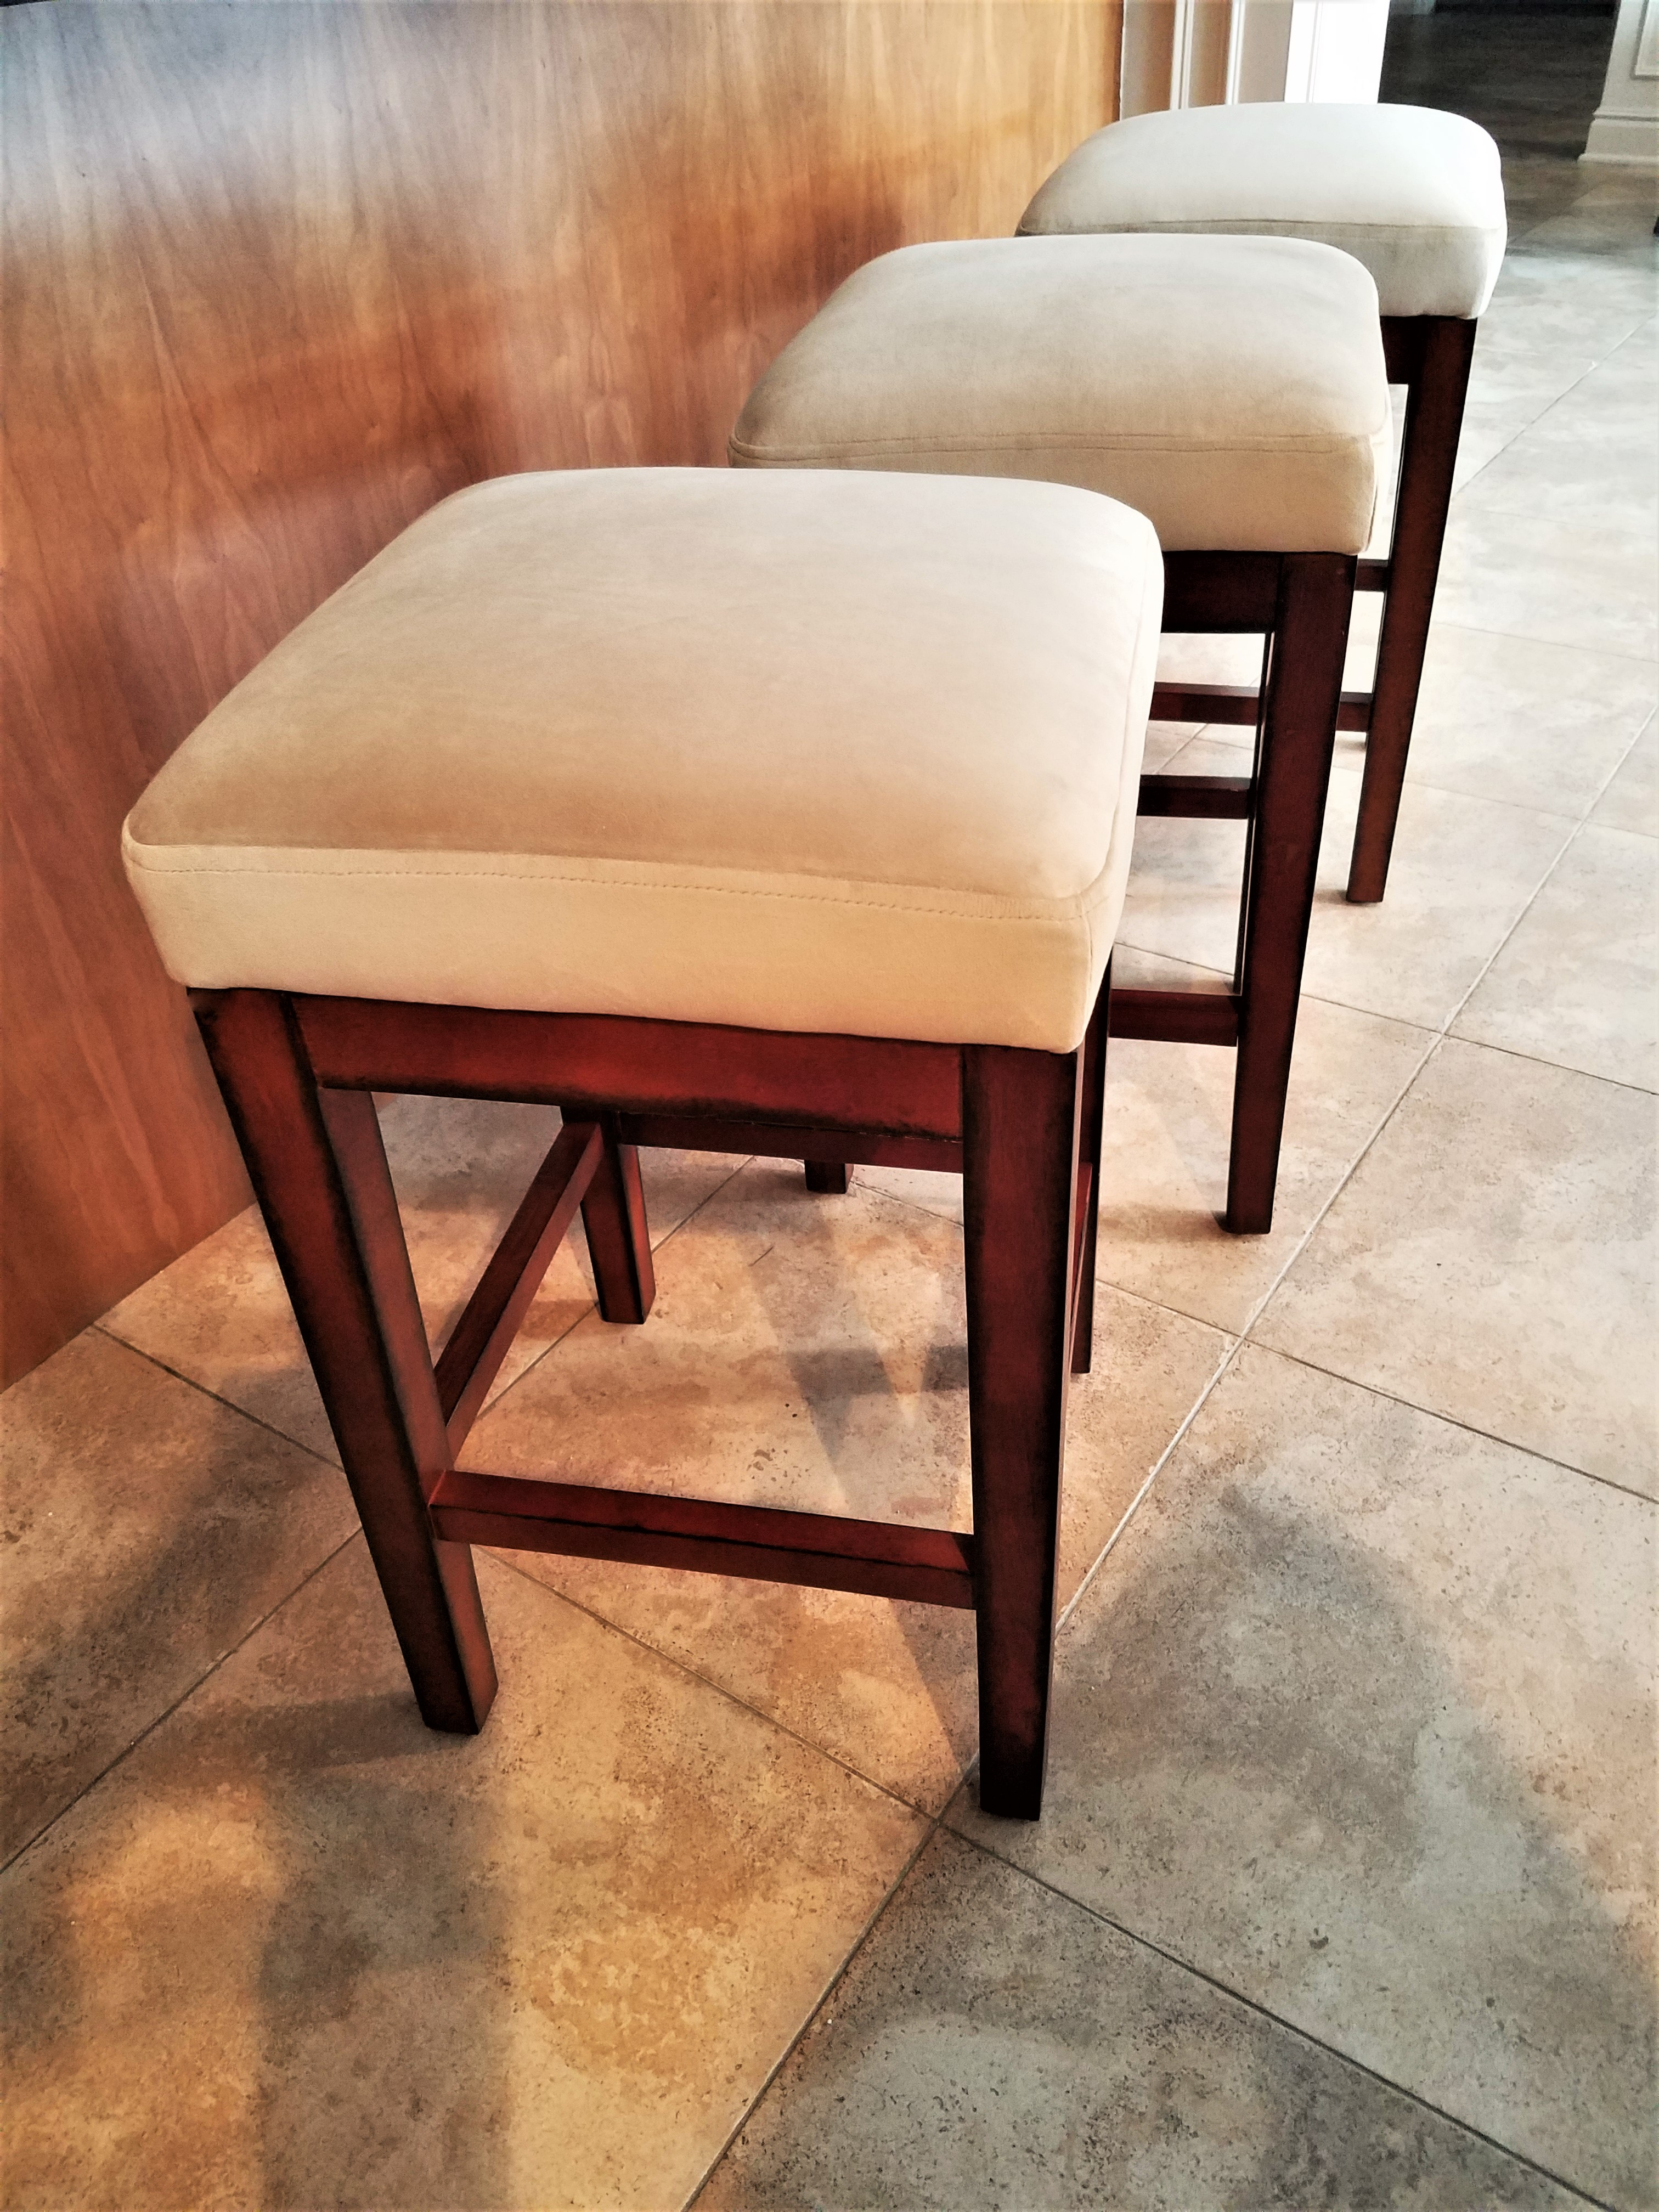 How To Reupholster A Bar Stool Seat